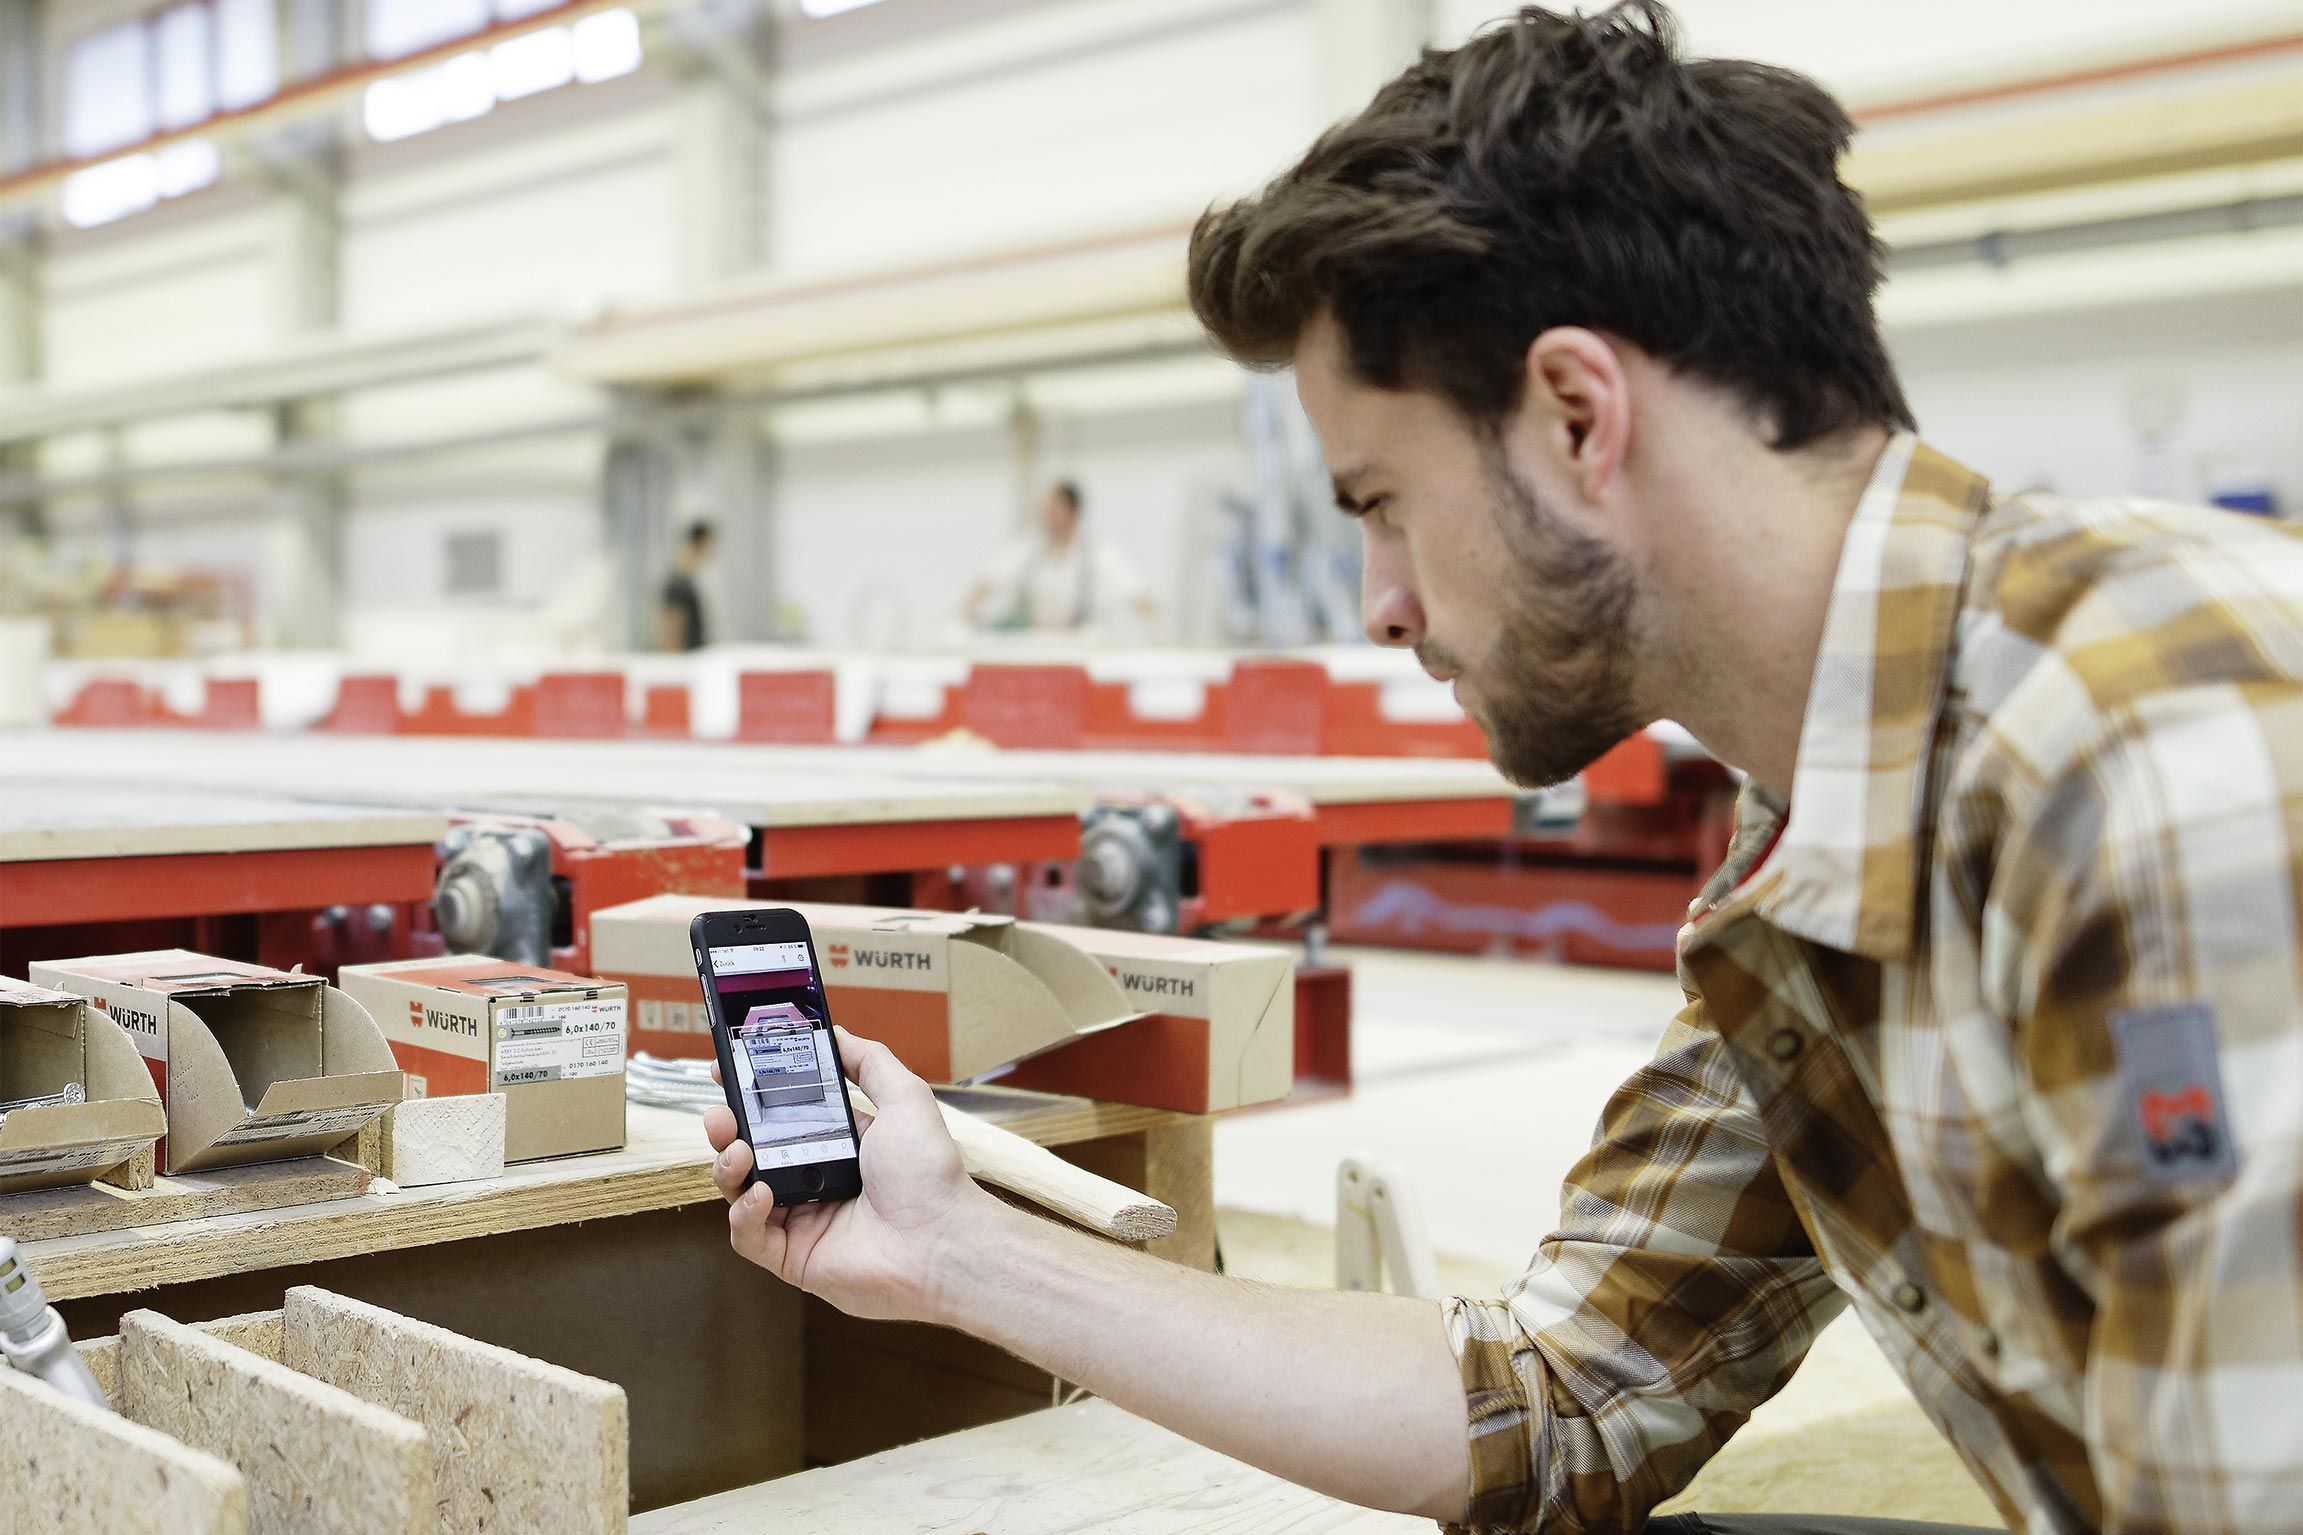 Customers can use the Würth App to scan barcodes and order products, find their nearest branch office or analyze the noise level to find the best ear protectors – all they need is their smartphone.